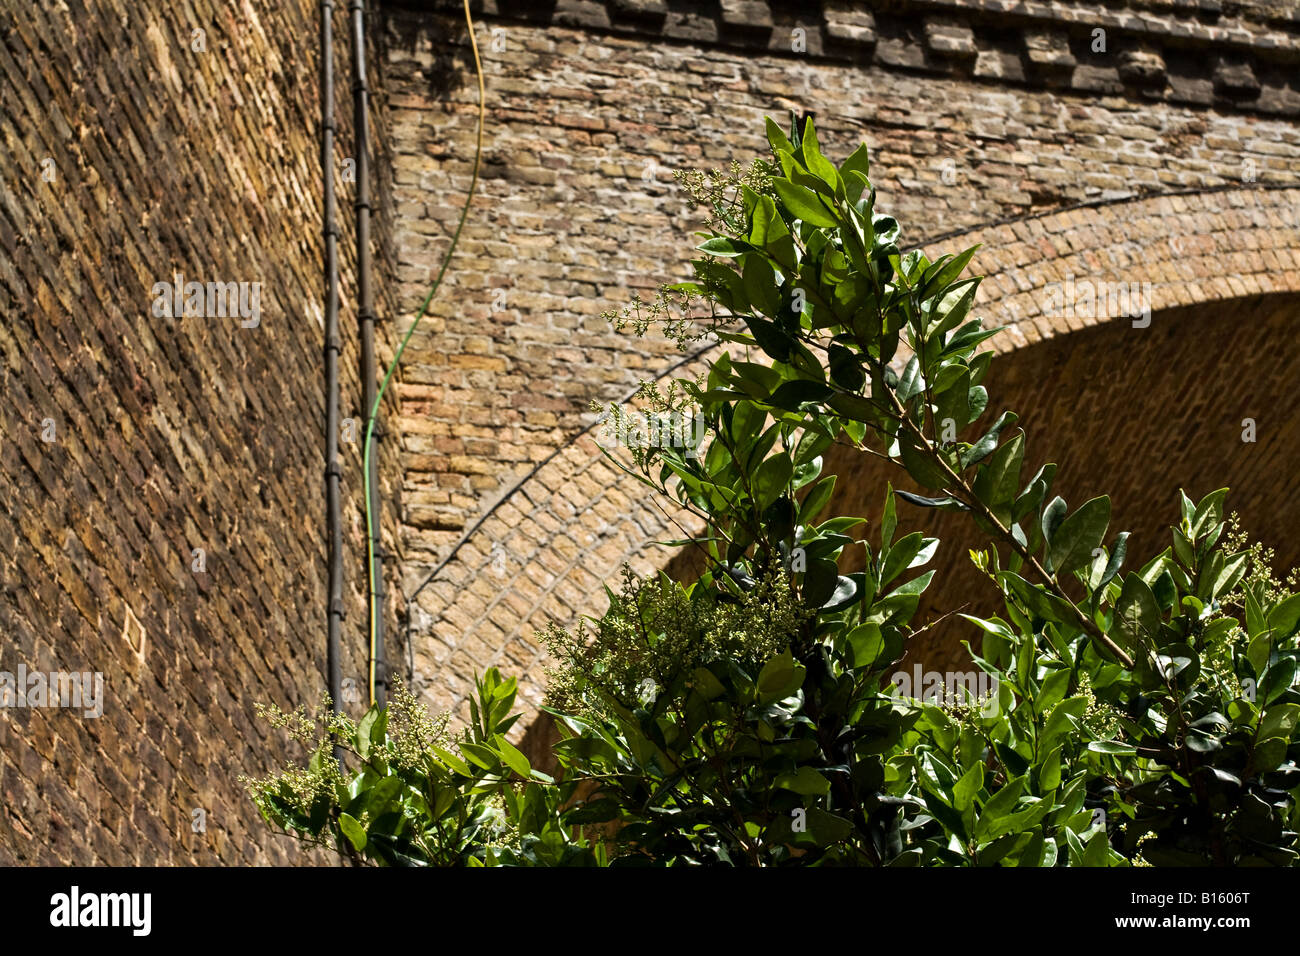 Plants in front of old brick railway arch. - Stock Image